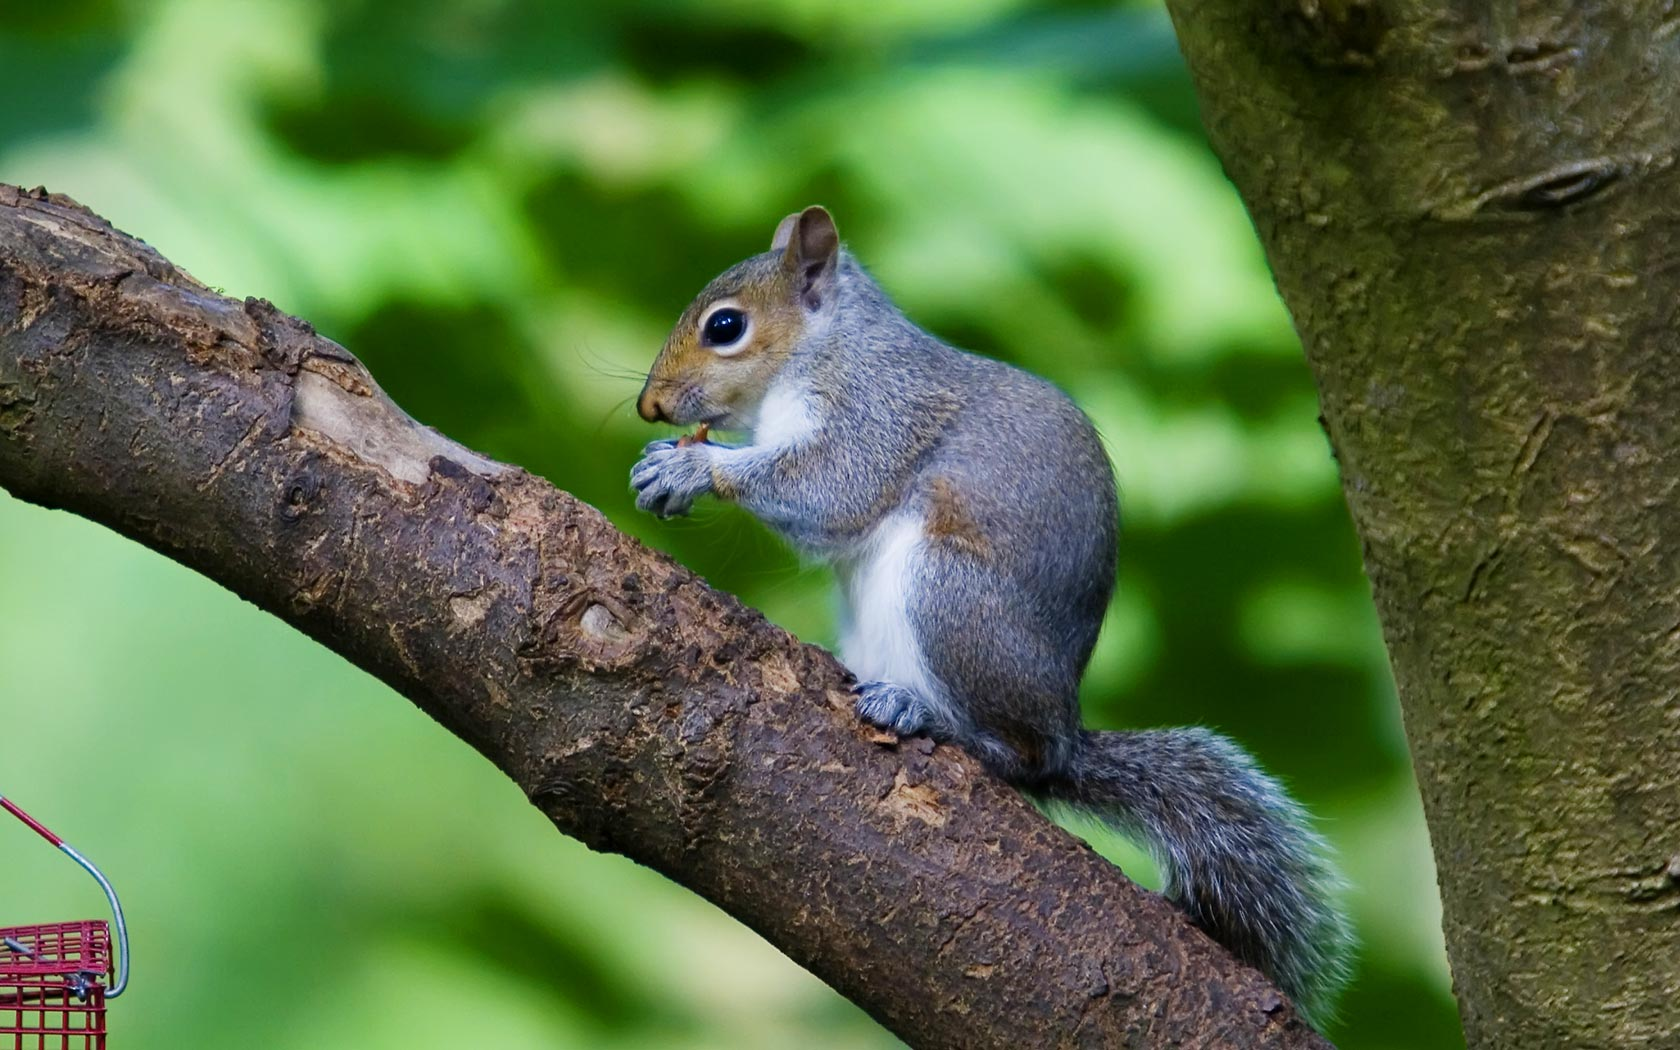 75 Hd Animals Ipad Backgrounds: Squirrel Wallpapers For Desktop